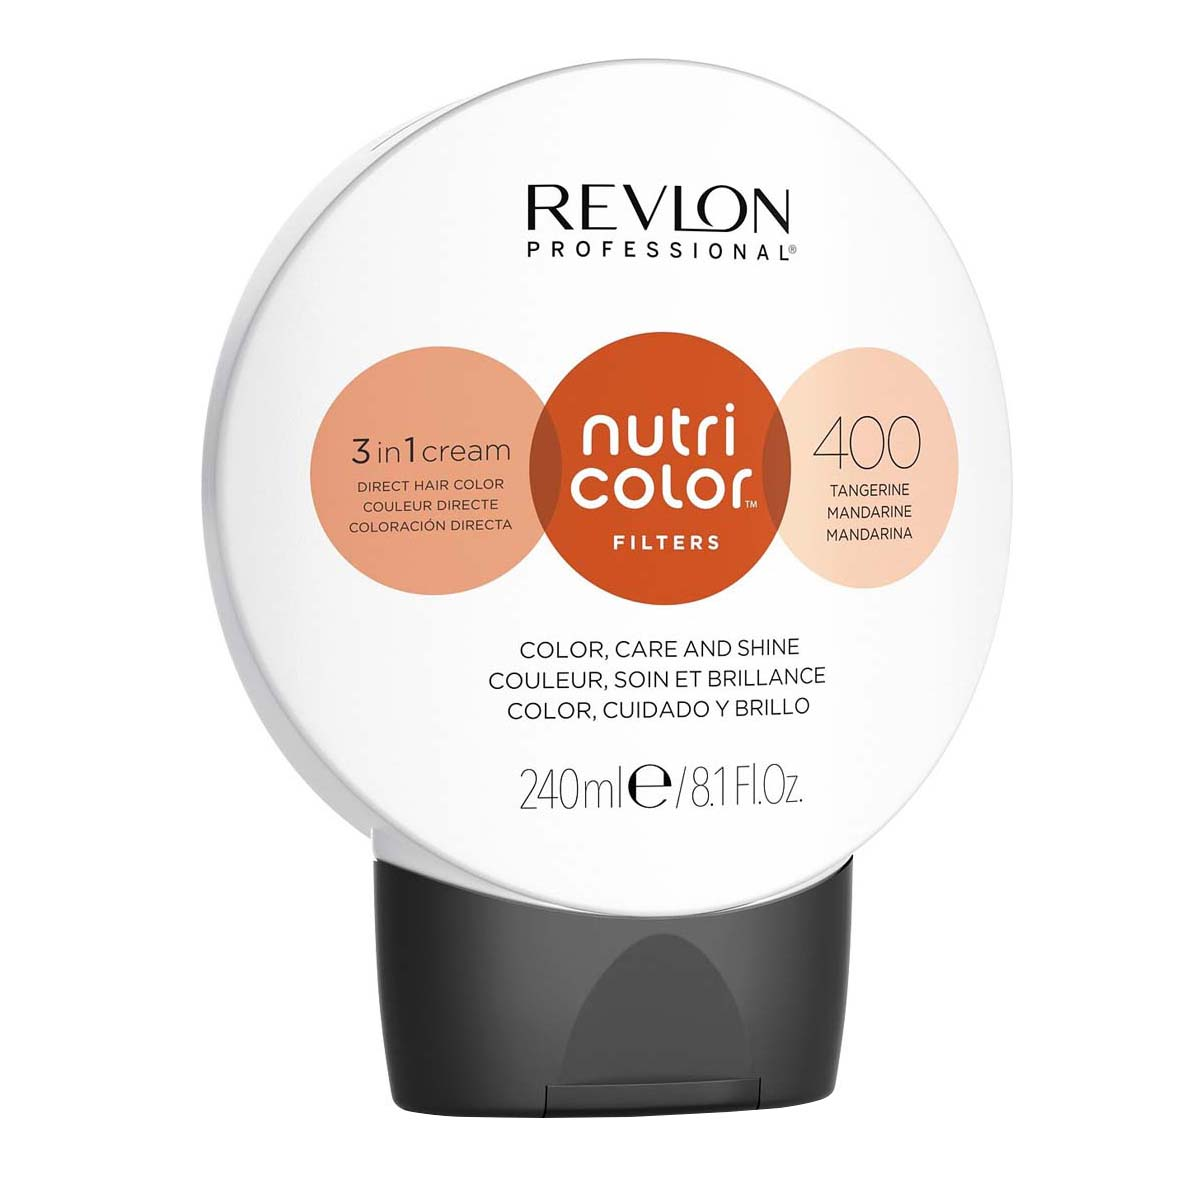 Nutri Color Filters 240ml - 400 Mandarine